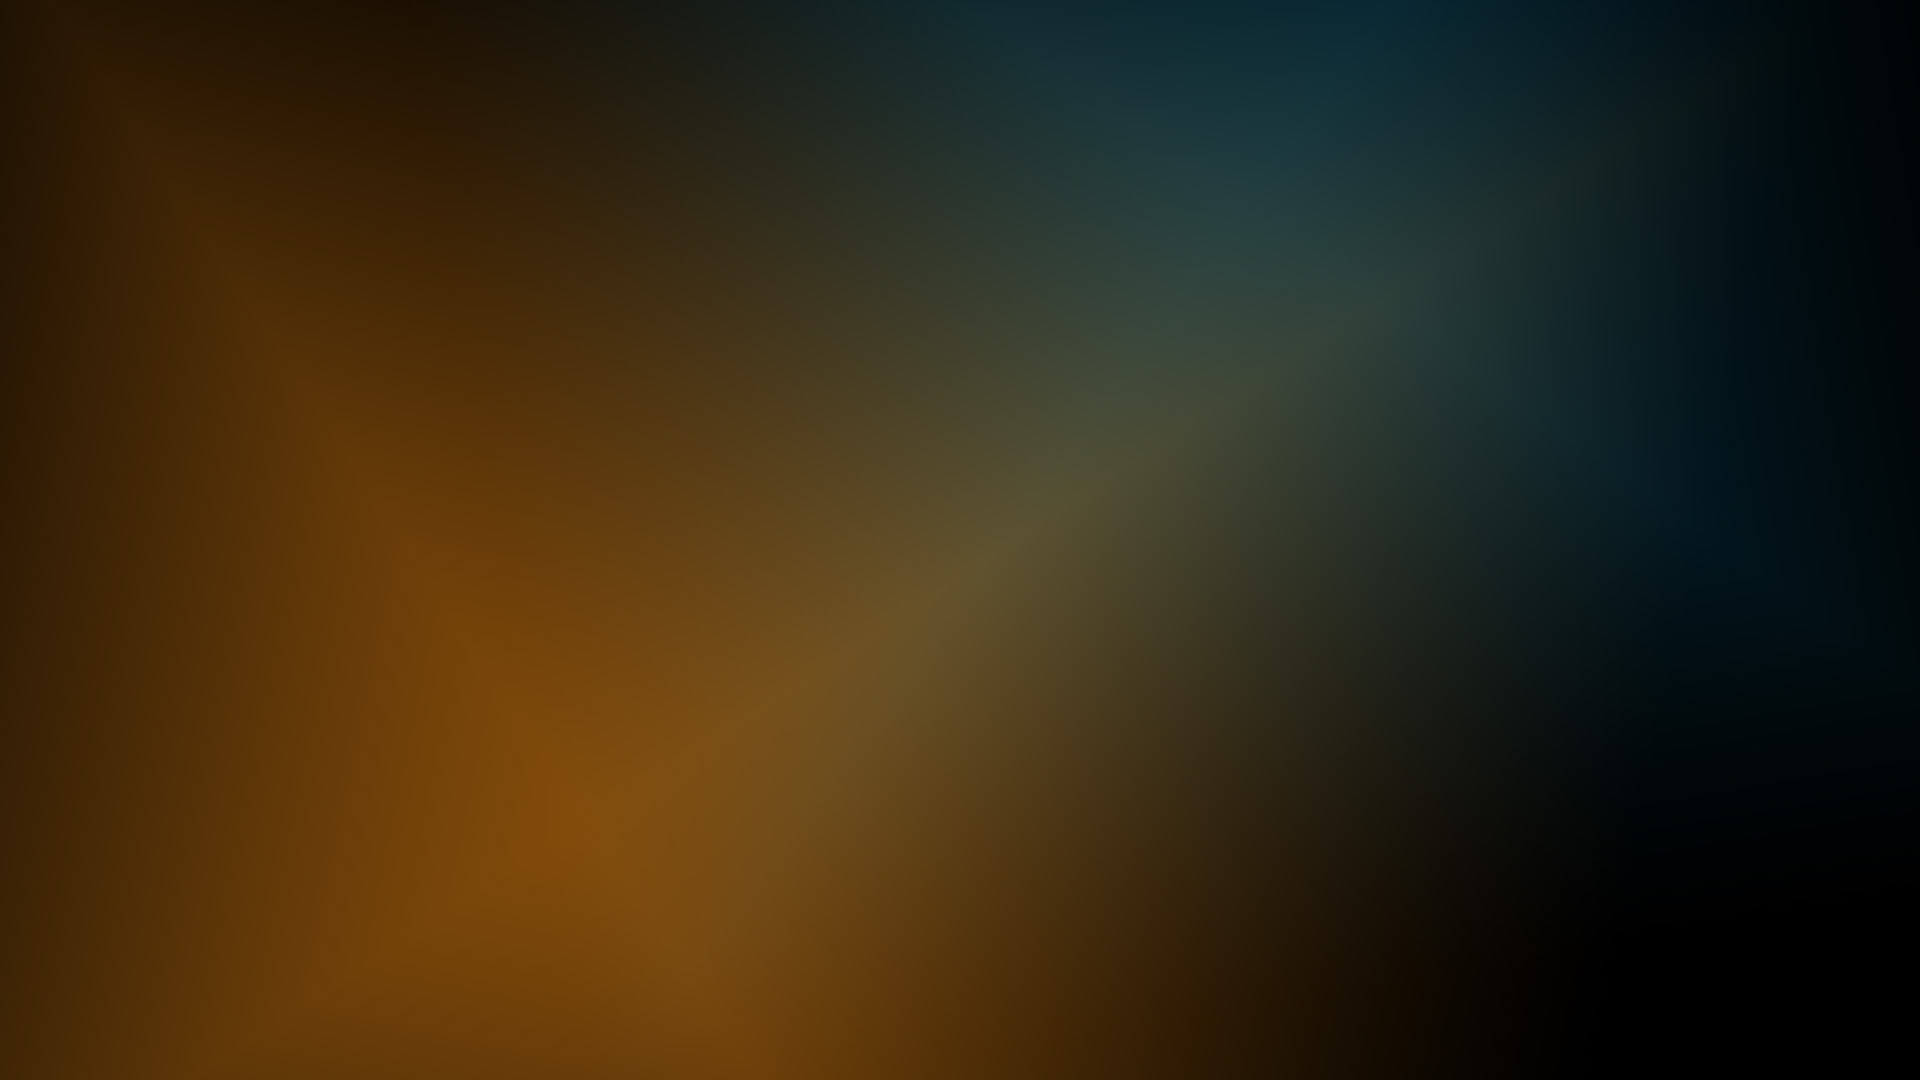 Basic orange and blue background by berethead 1920x1080